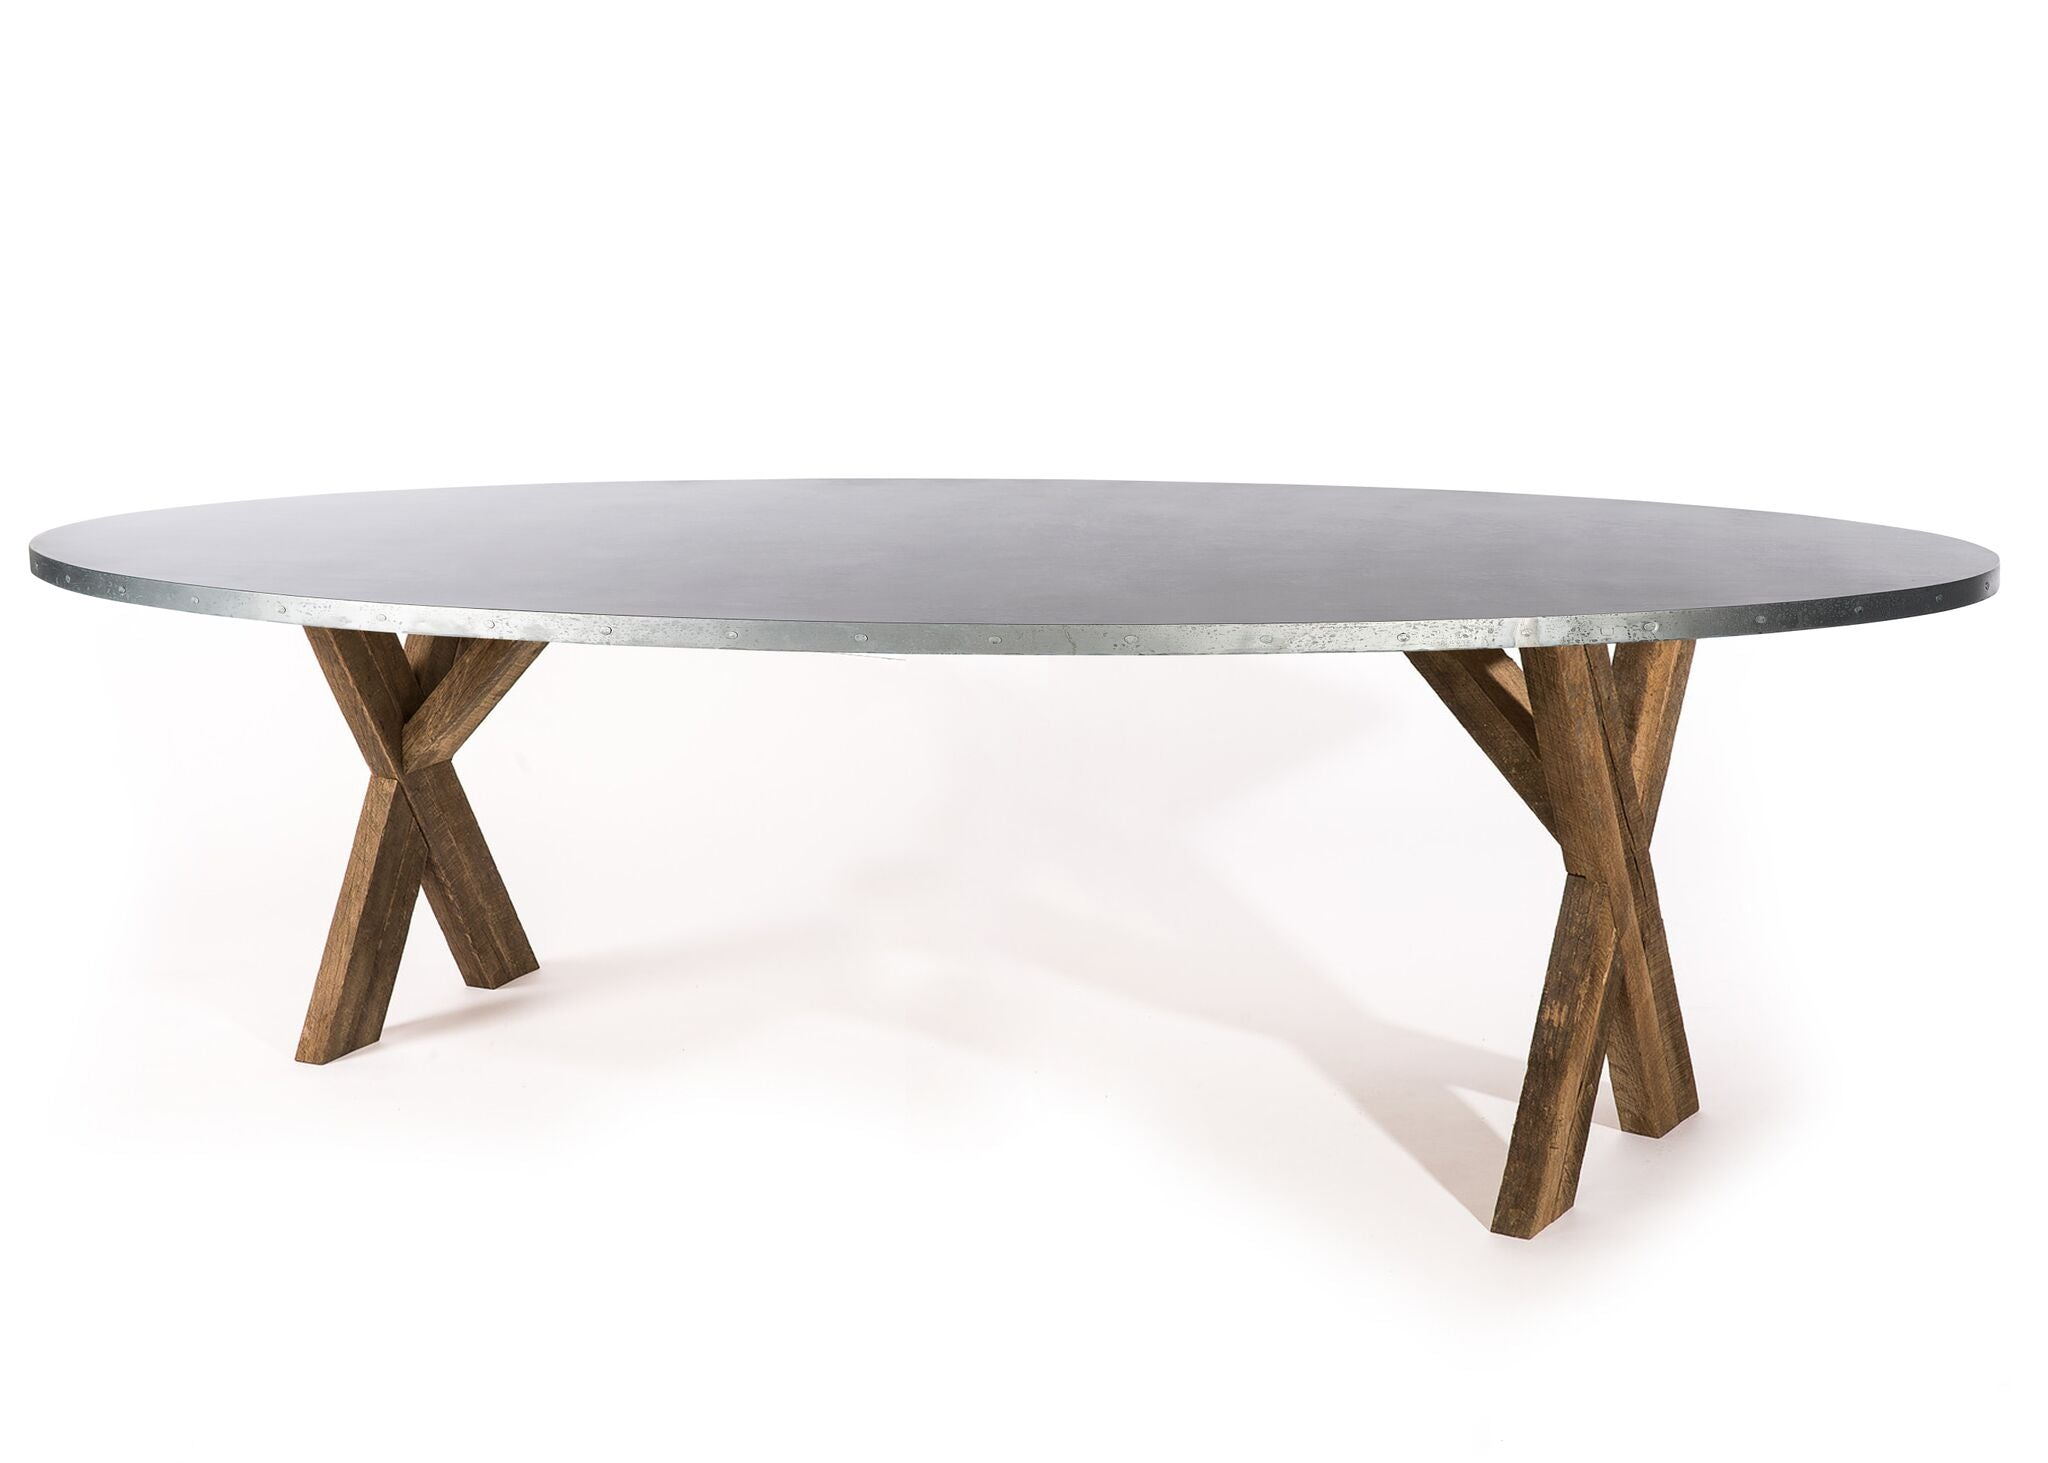 Zinc Oval Tables | X Base Trestle Table | CLASSIC | Natural Ash | CUSTOM SIZE L 60.00 W 37.00 H undefined | kingston-krafts-zinc-tables.